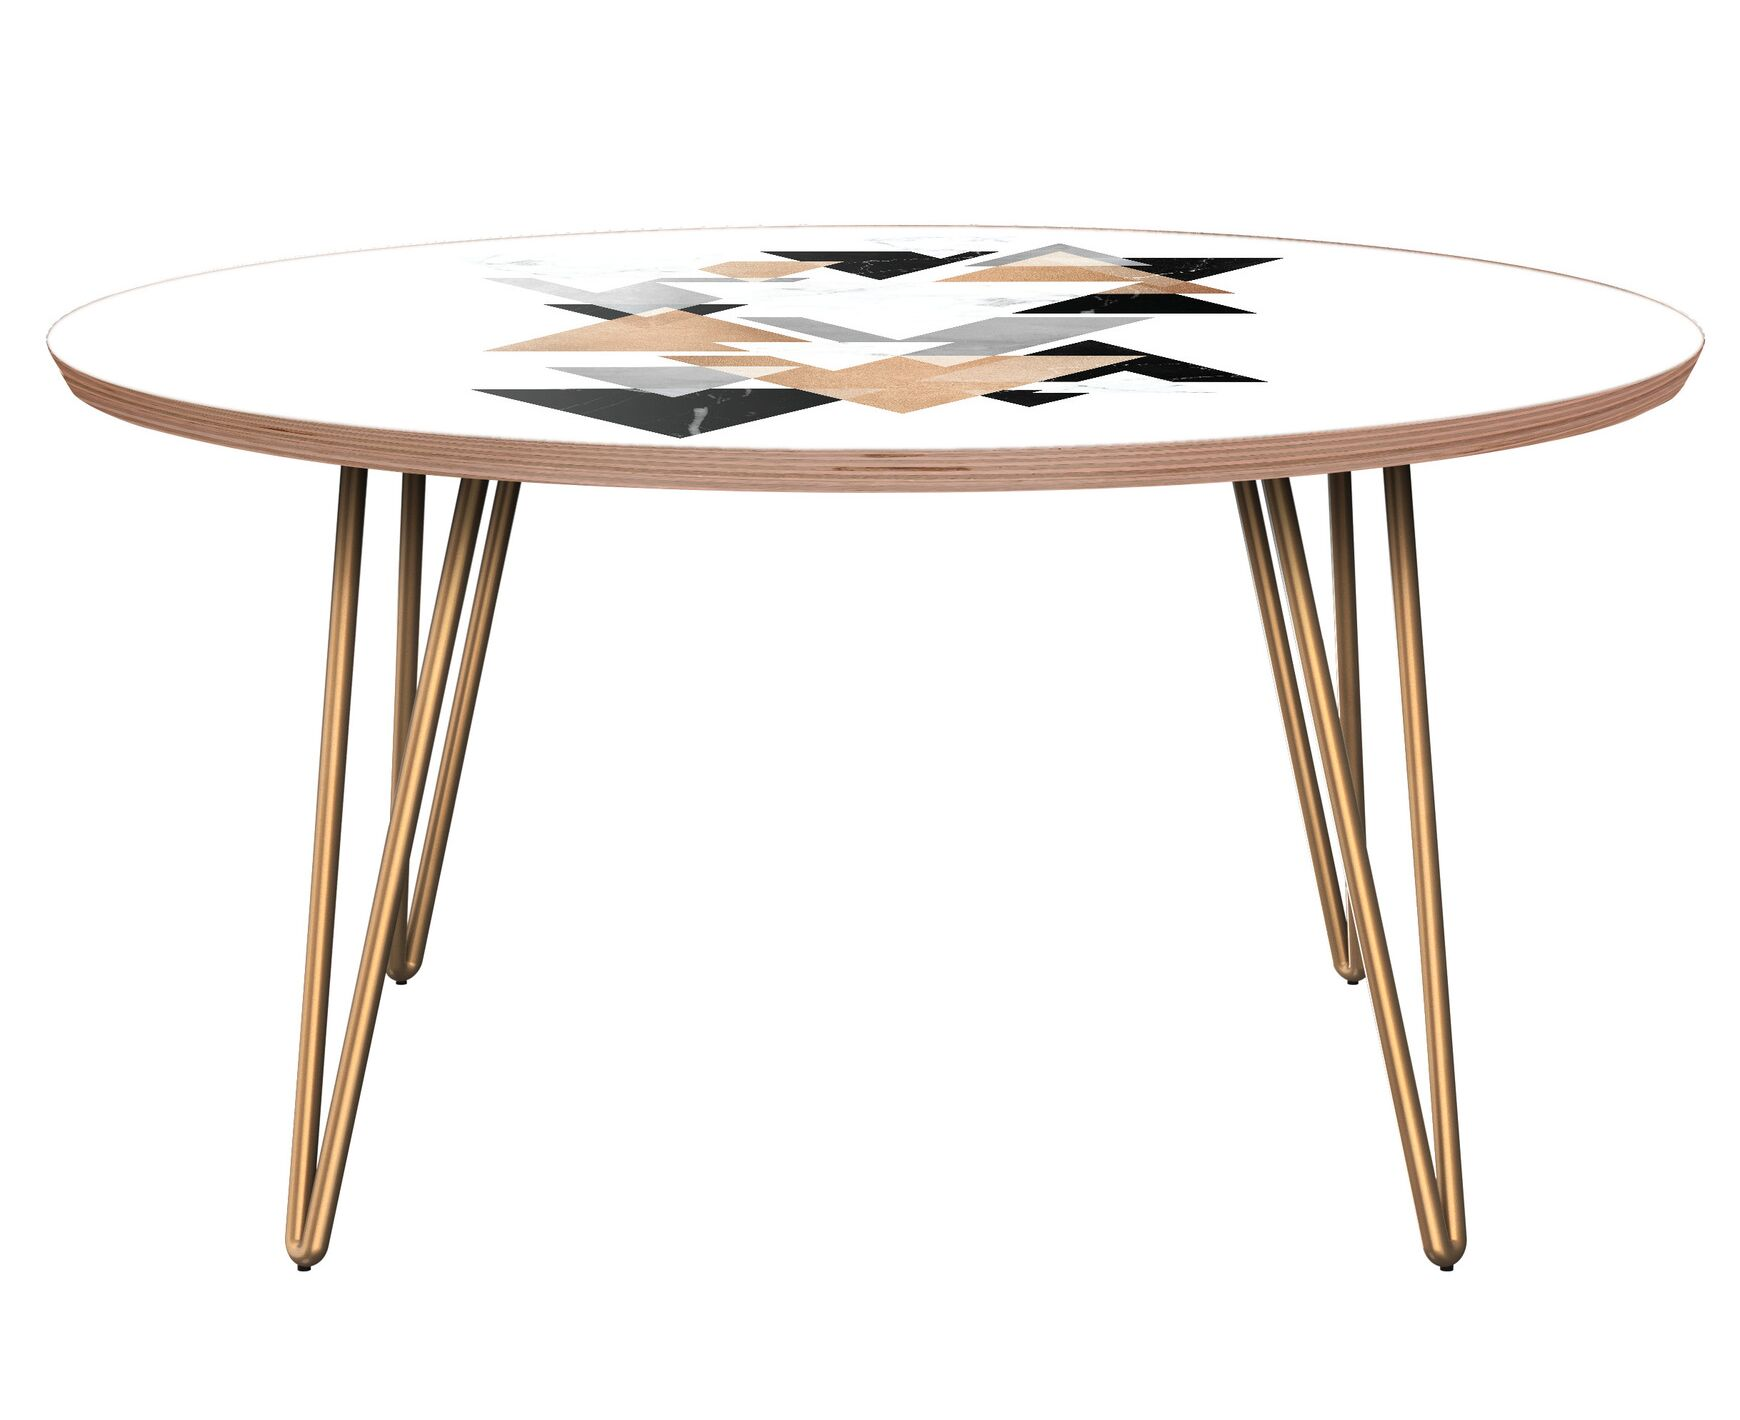 Laurens Coffee Table Table Base Color: Brass, Table Top Color: Walnut